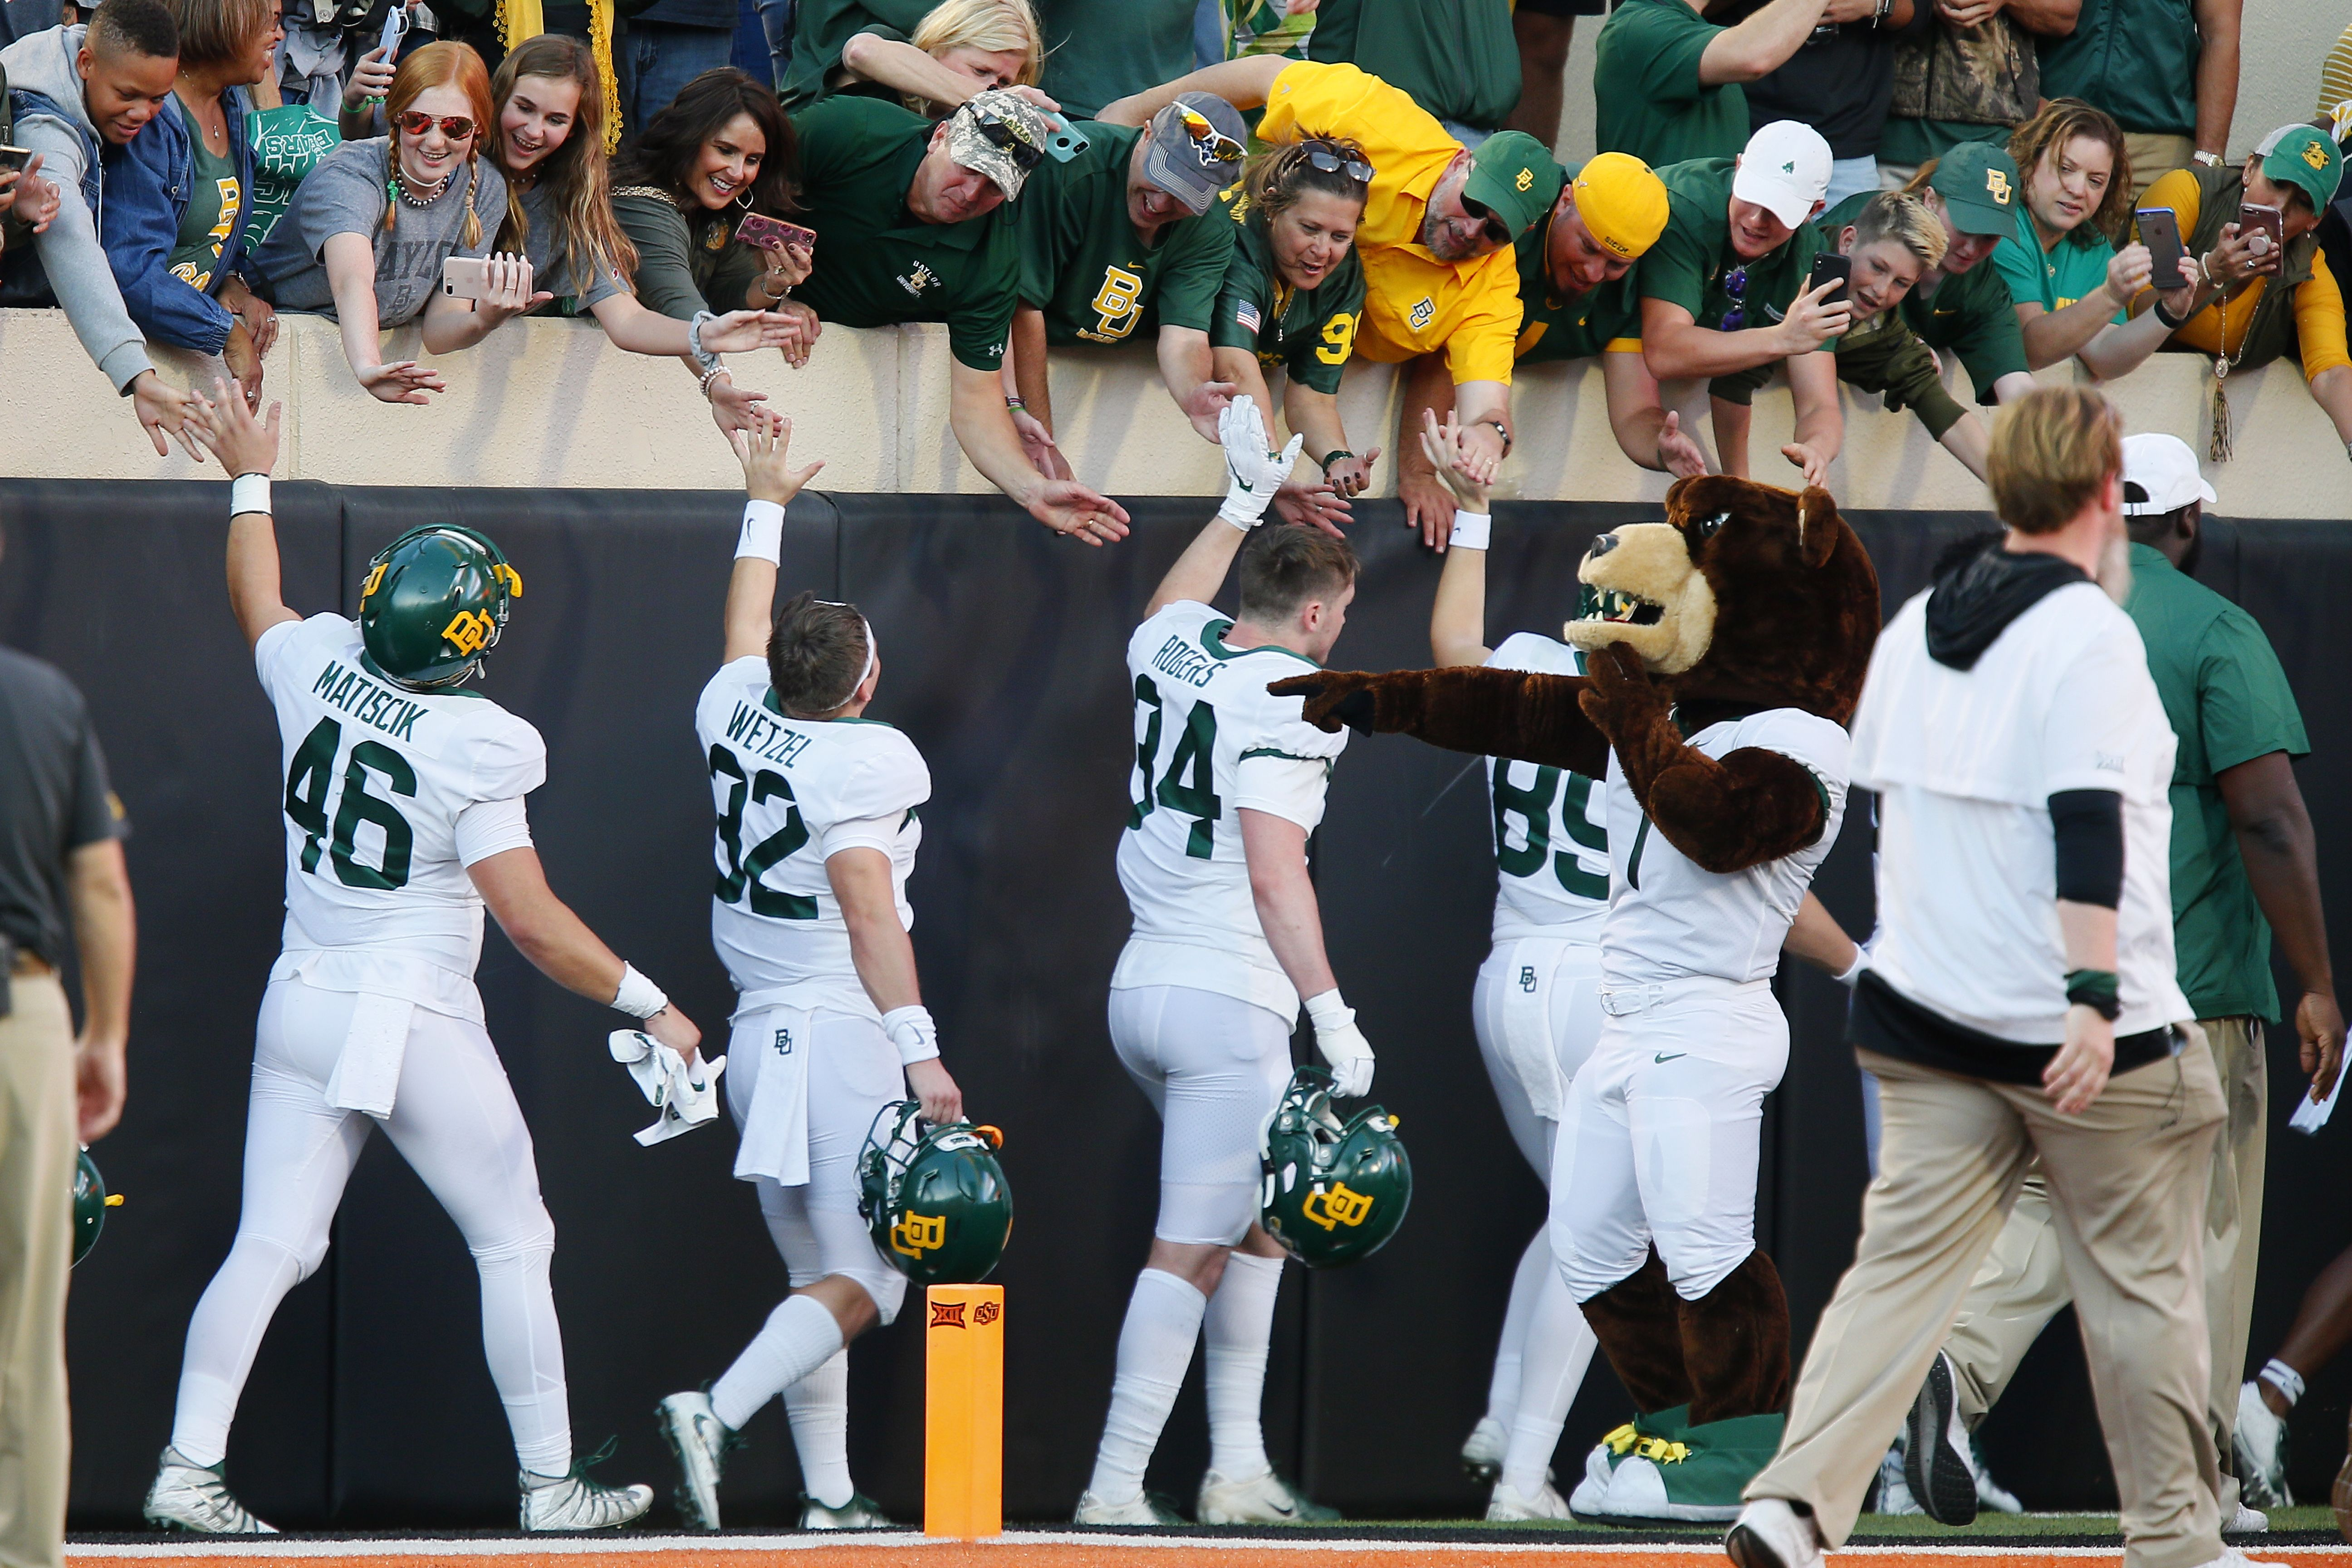 College athletes are one step closer to getting paid